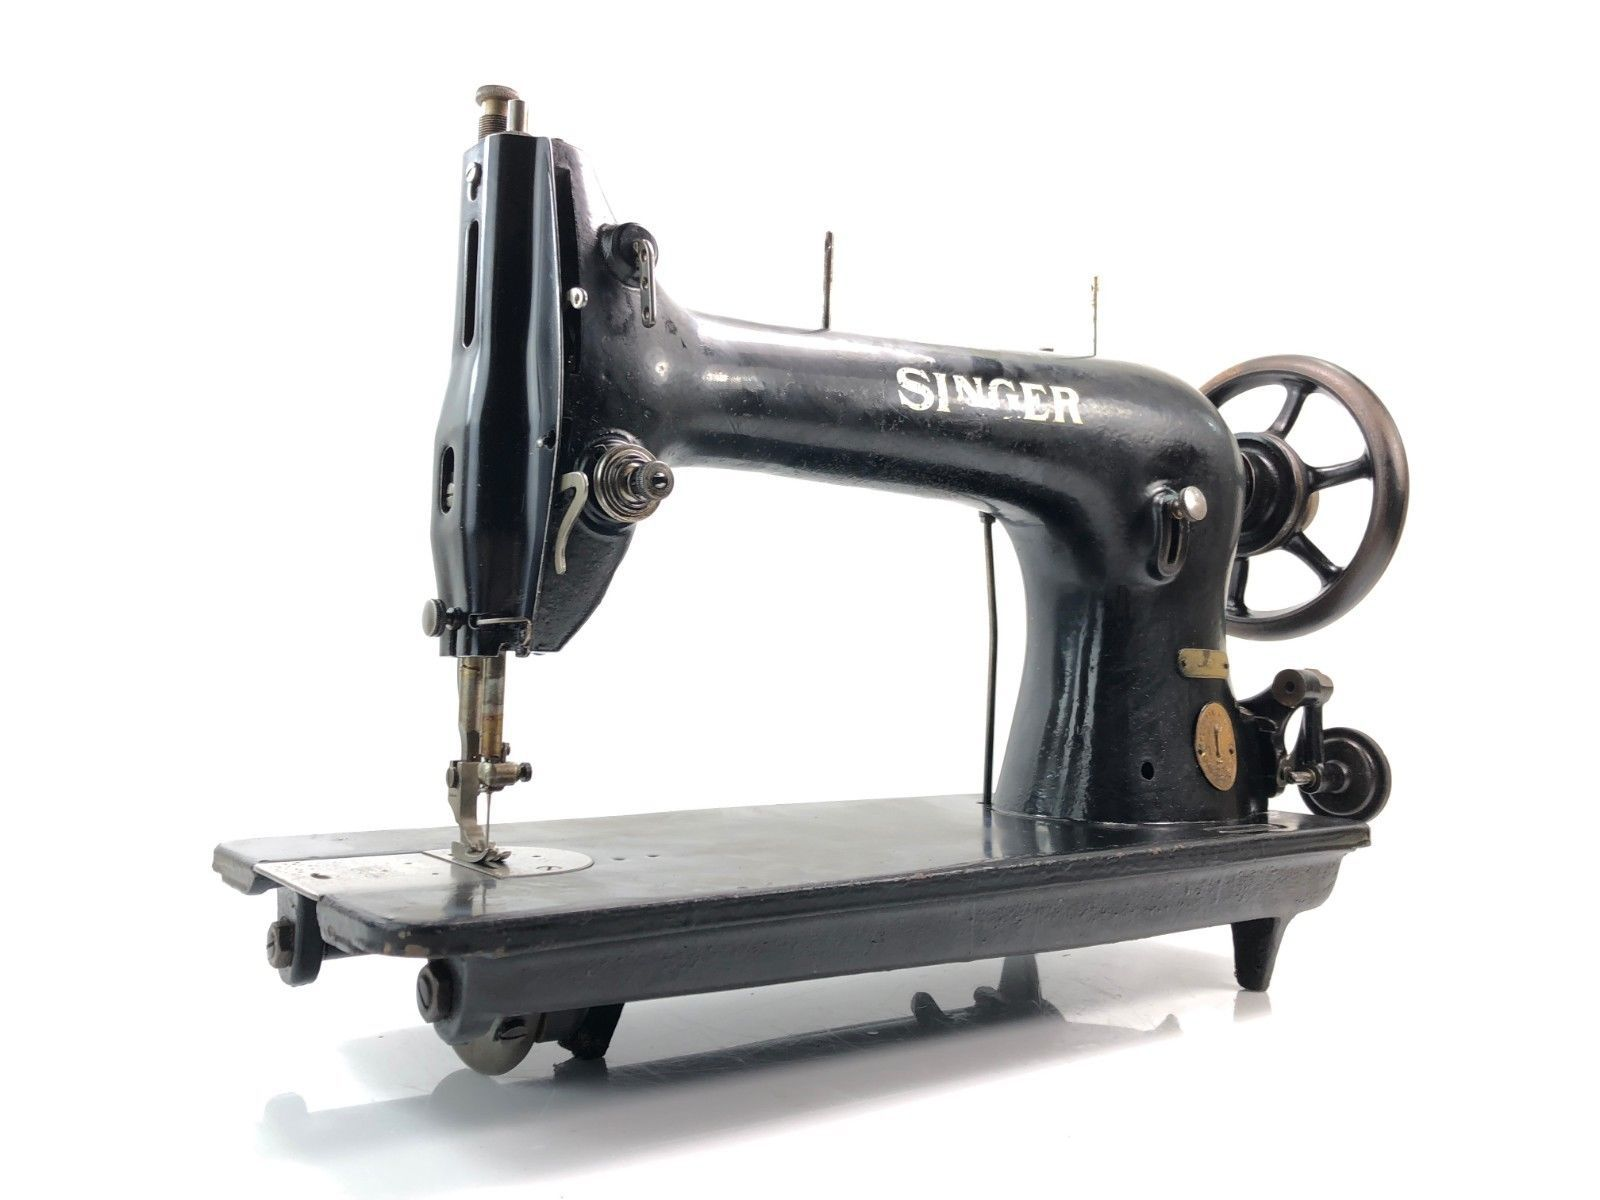 Singer 31k Industrial Sewing Machine Leather Upholstery Head Only Ebay Sewing Machine Industrial Sewing Machine Industrial Sewing